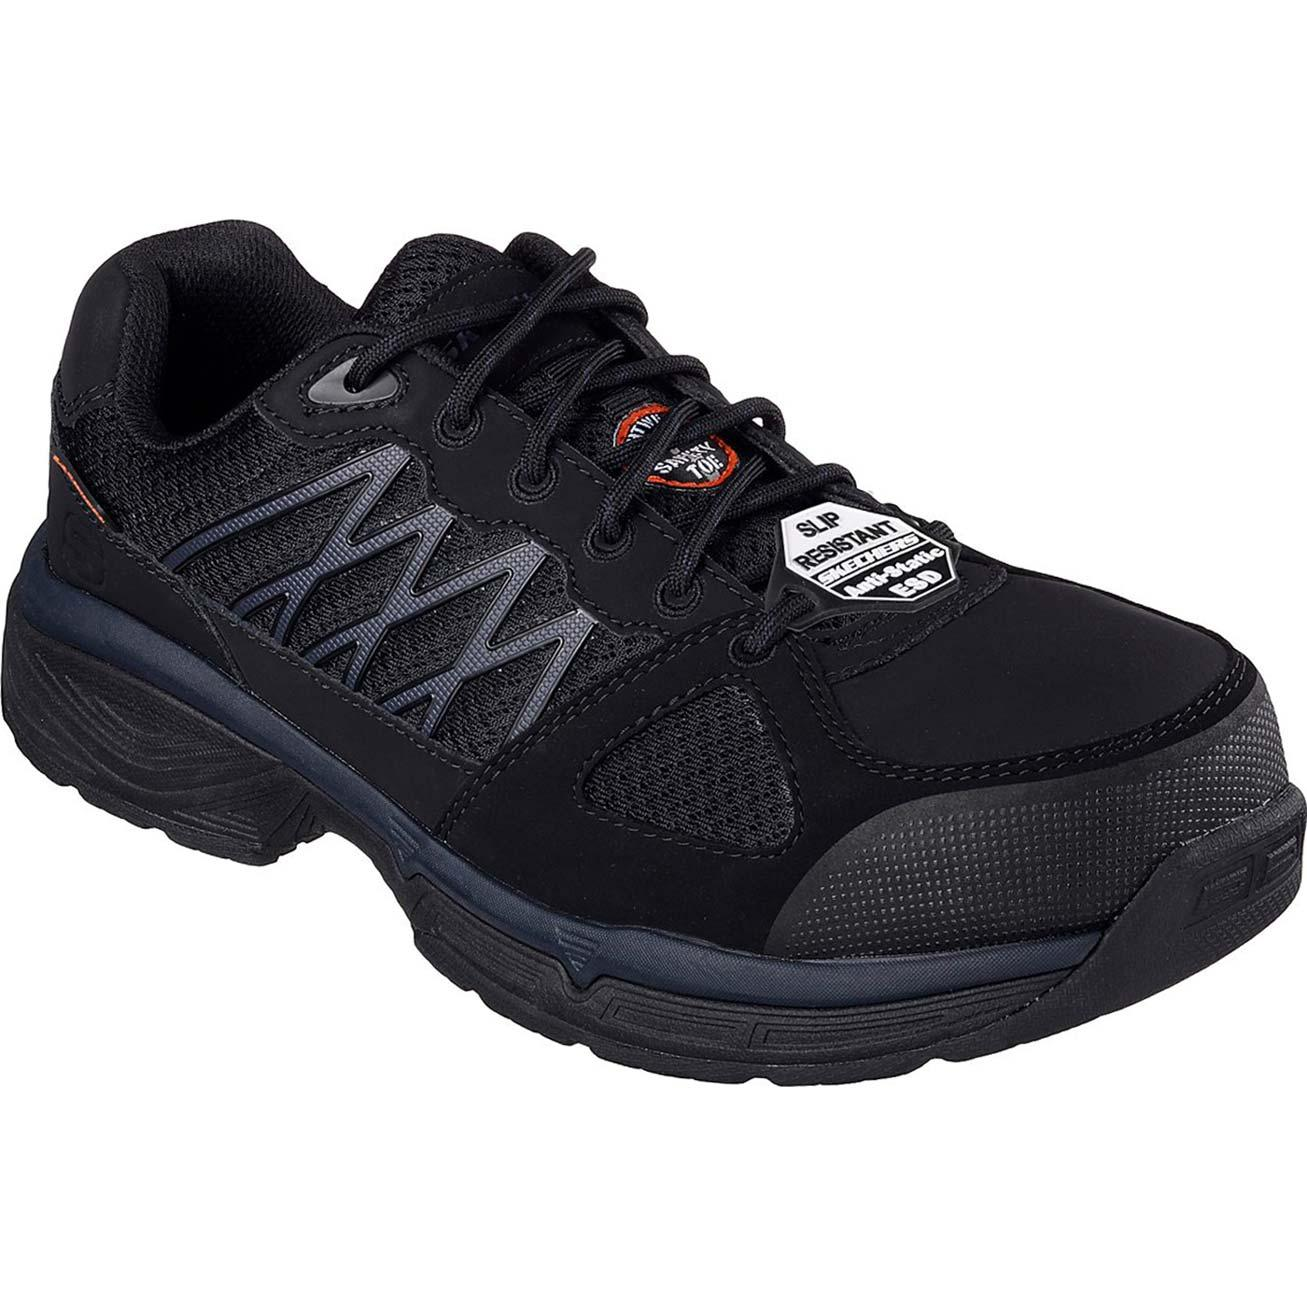 edf9425aa7b63 SKECHERS Work Relaxed Fit Conroe Searcy ESD Alloy Toe Static-Dissipative  Work Athletic ShoeSKECHERS Work Relaxed Fit Conroe Searcy ESD Alloy Toe ...